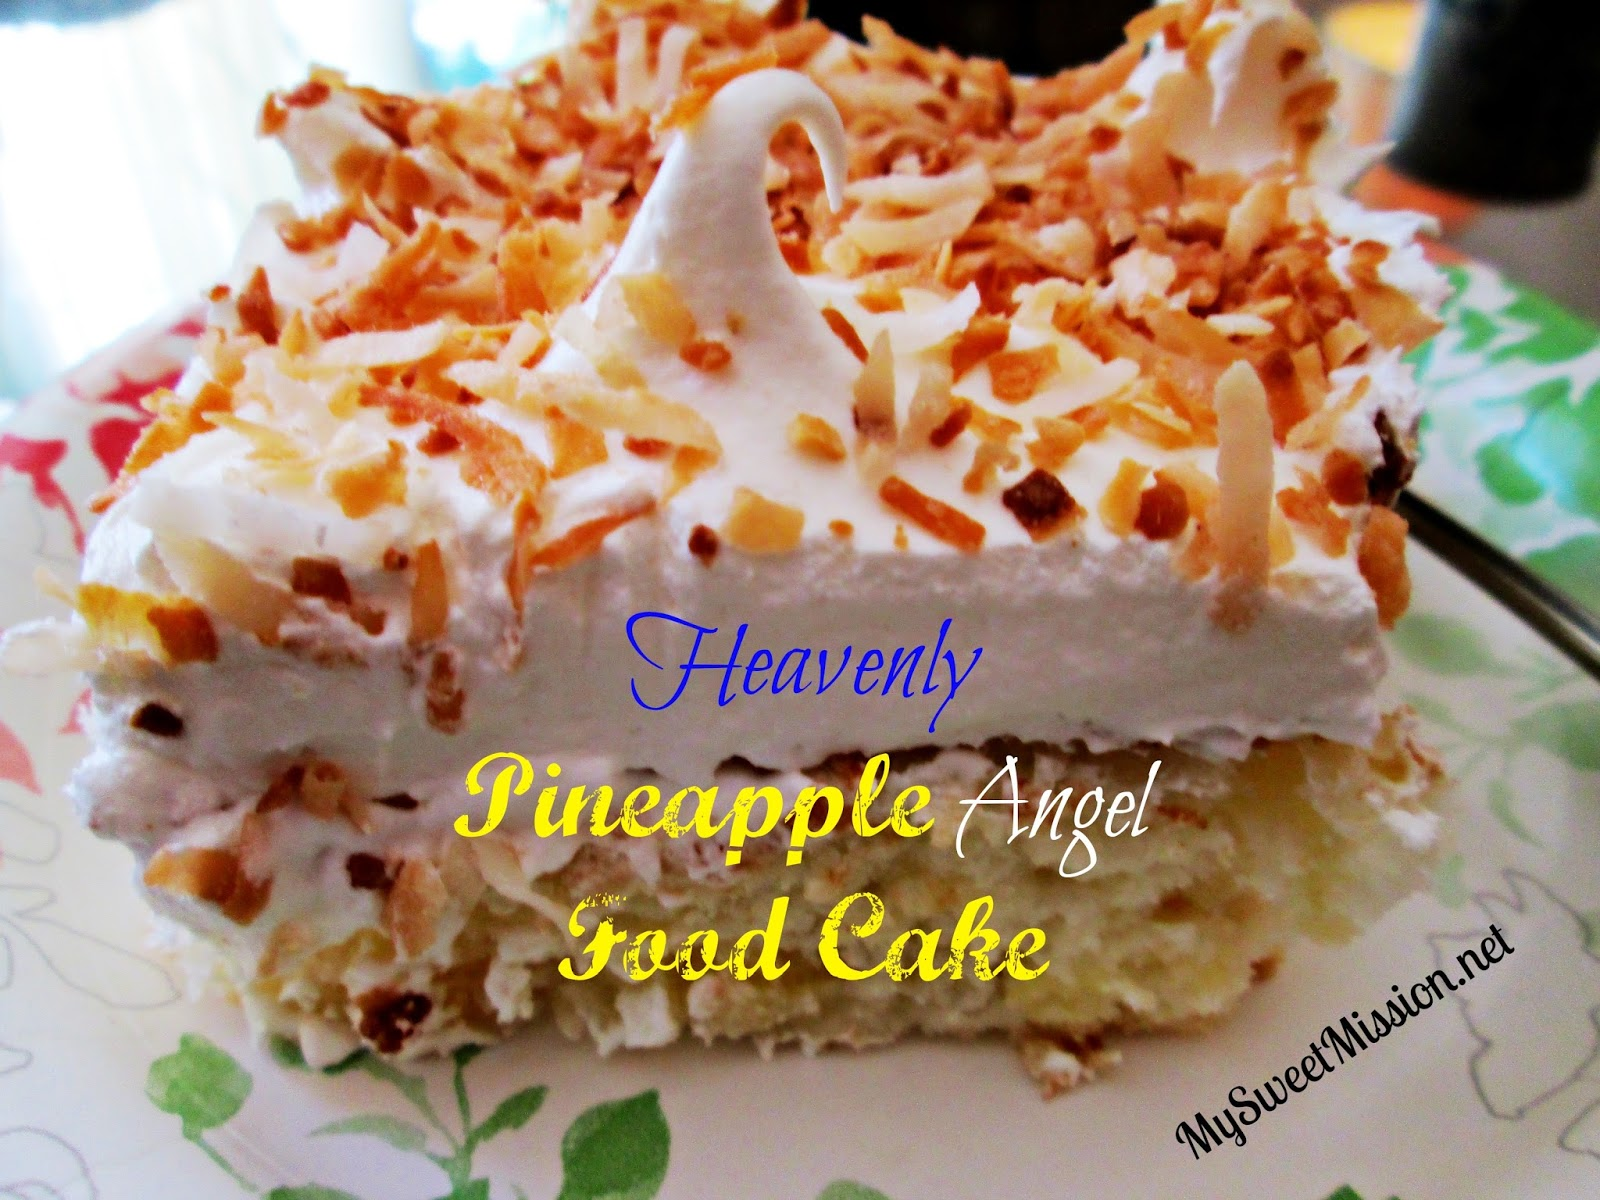 Heavenly Pineapple Angel Food Cake